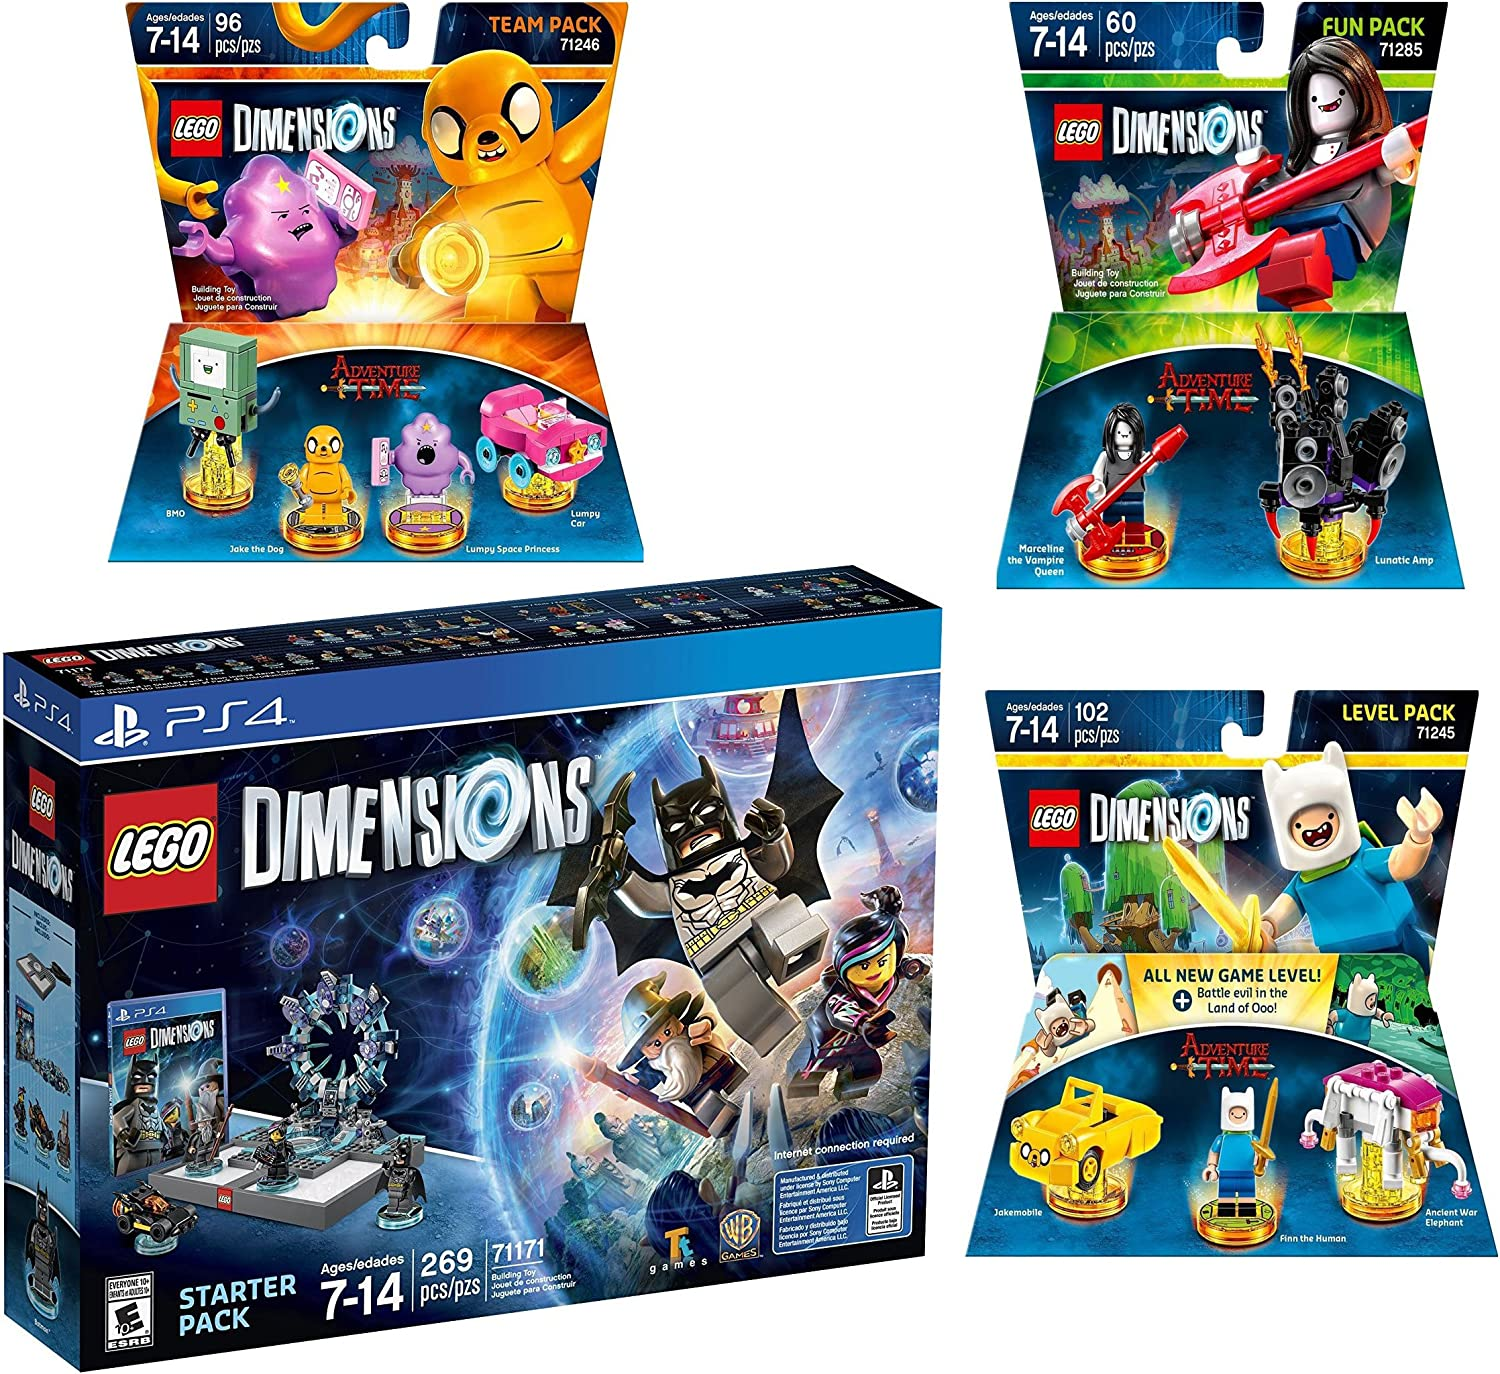 LEGO Dimensions MINIFIGURES ONLY you choose BRAND NEW story level team fun